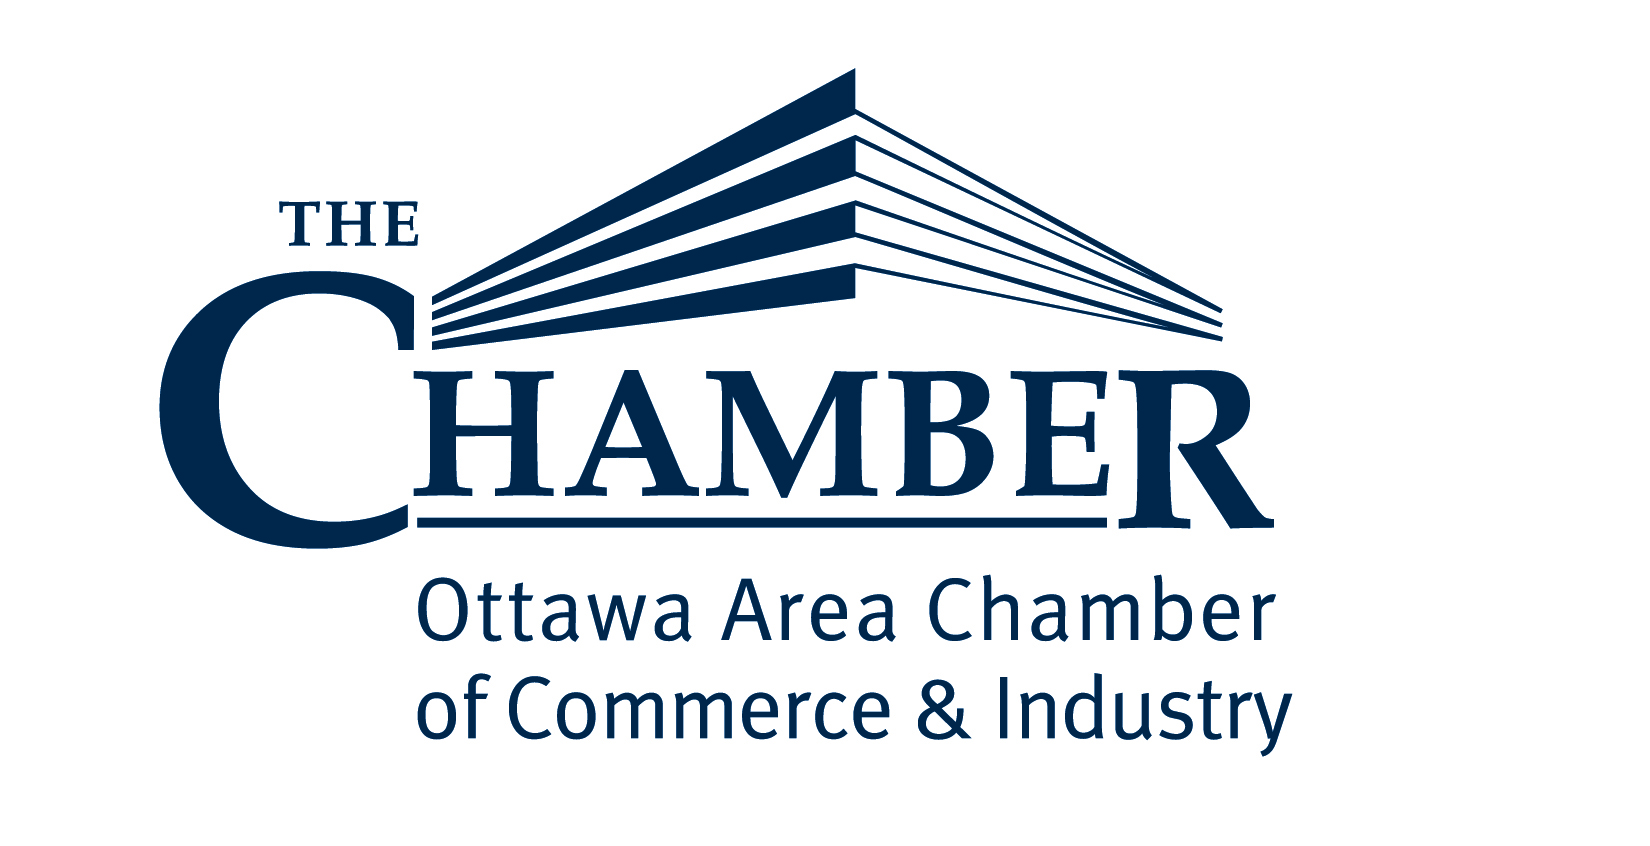 Ottawa Area Chamber of Commerce & Industry